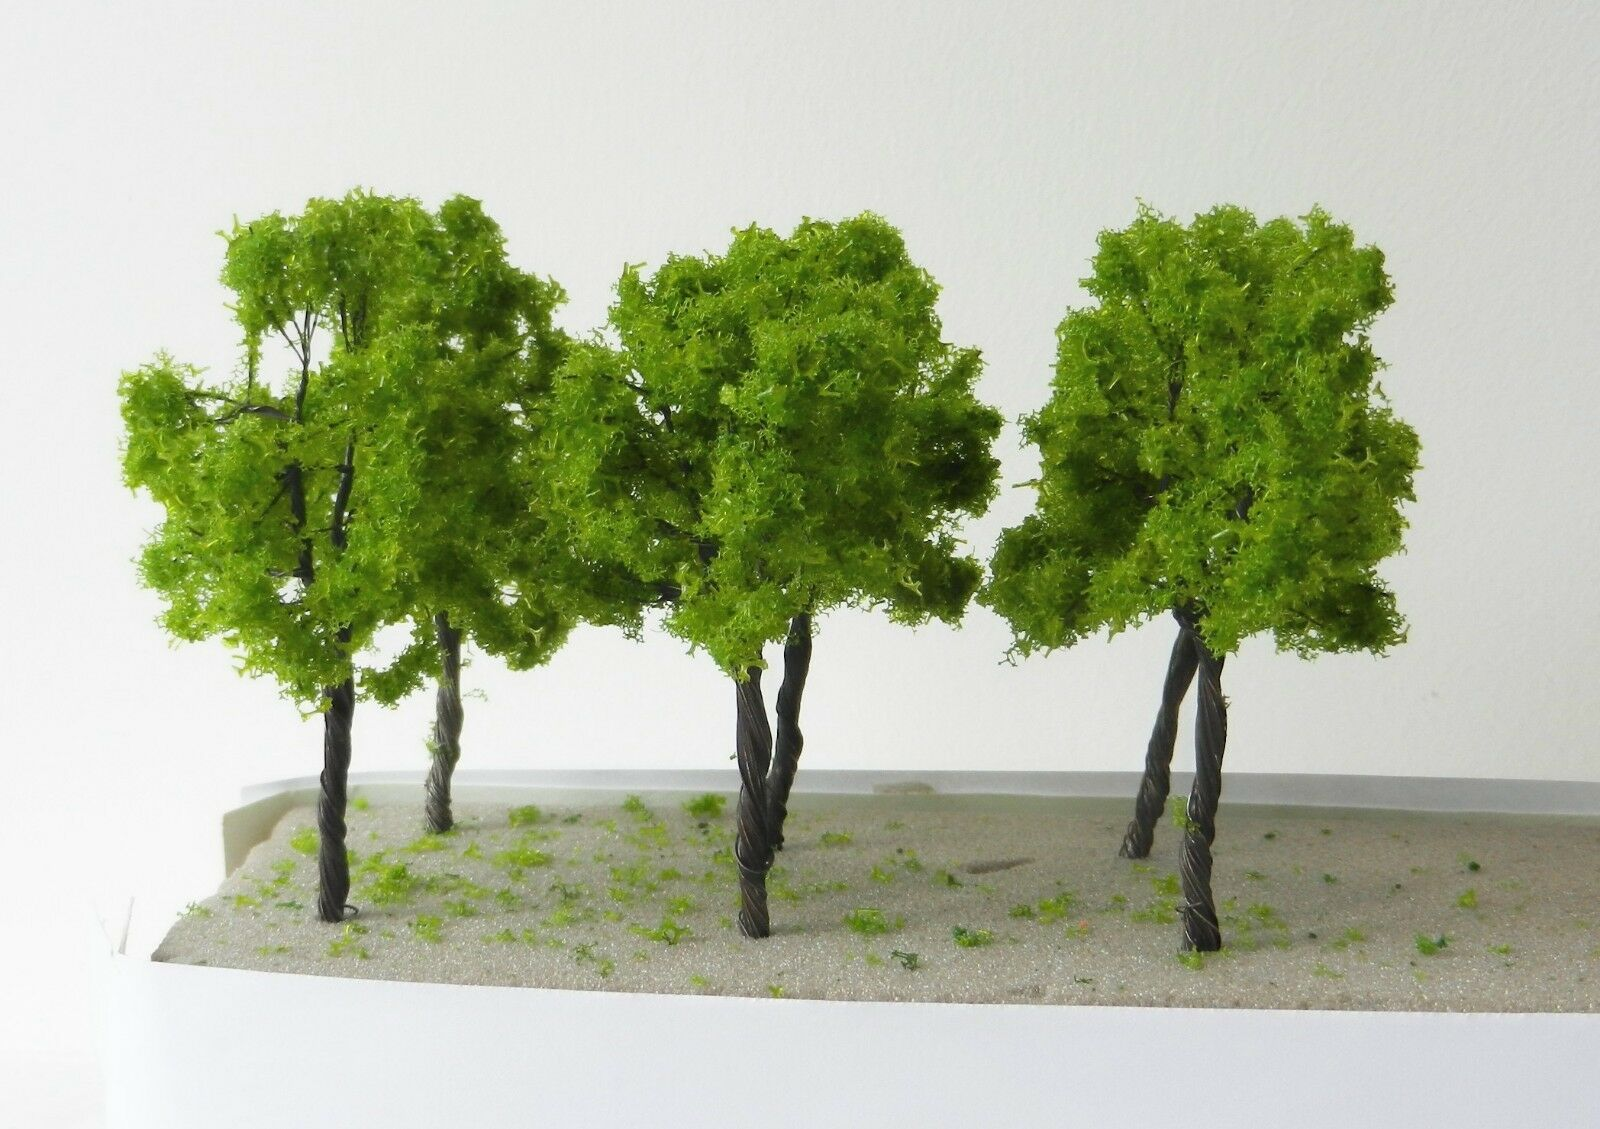 20 x IRON WIRE MODEL TREES 11 cm SCENERY FOR MODEL RAIL OO HO SCALE  B22 WARGAME